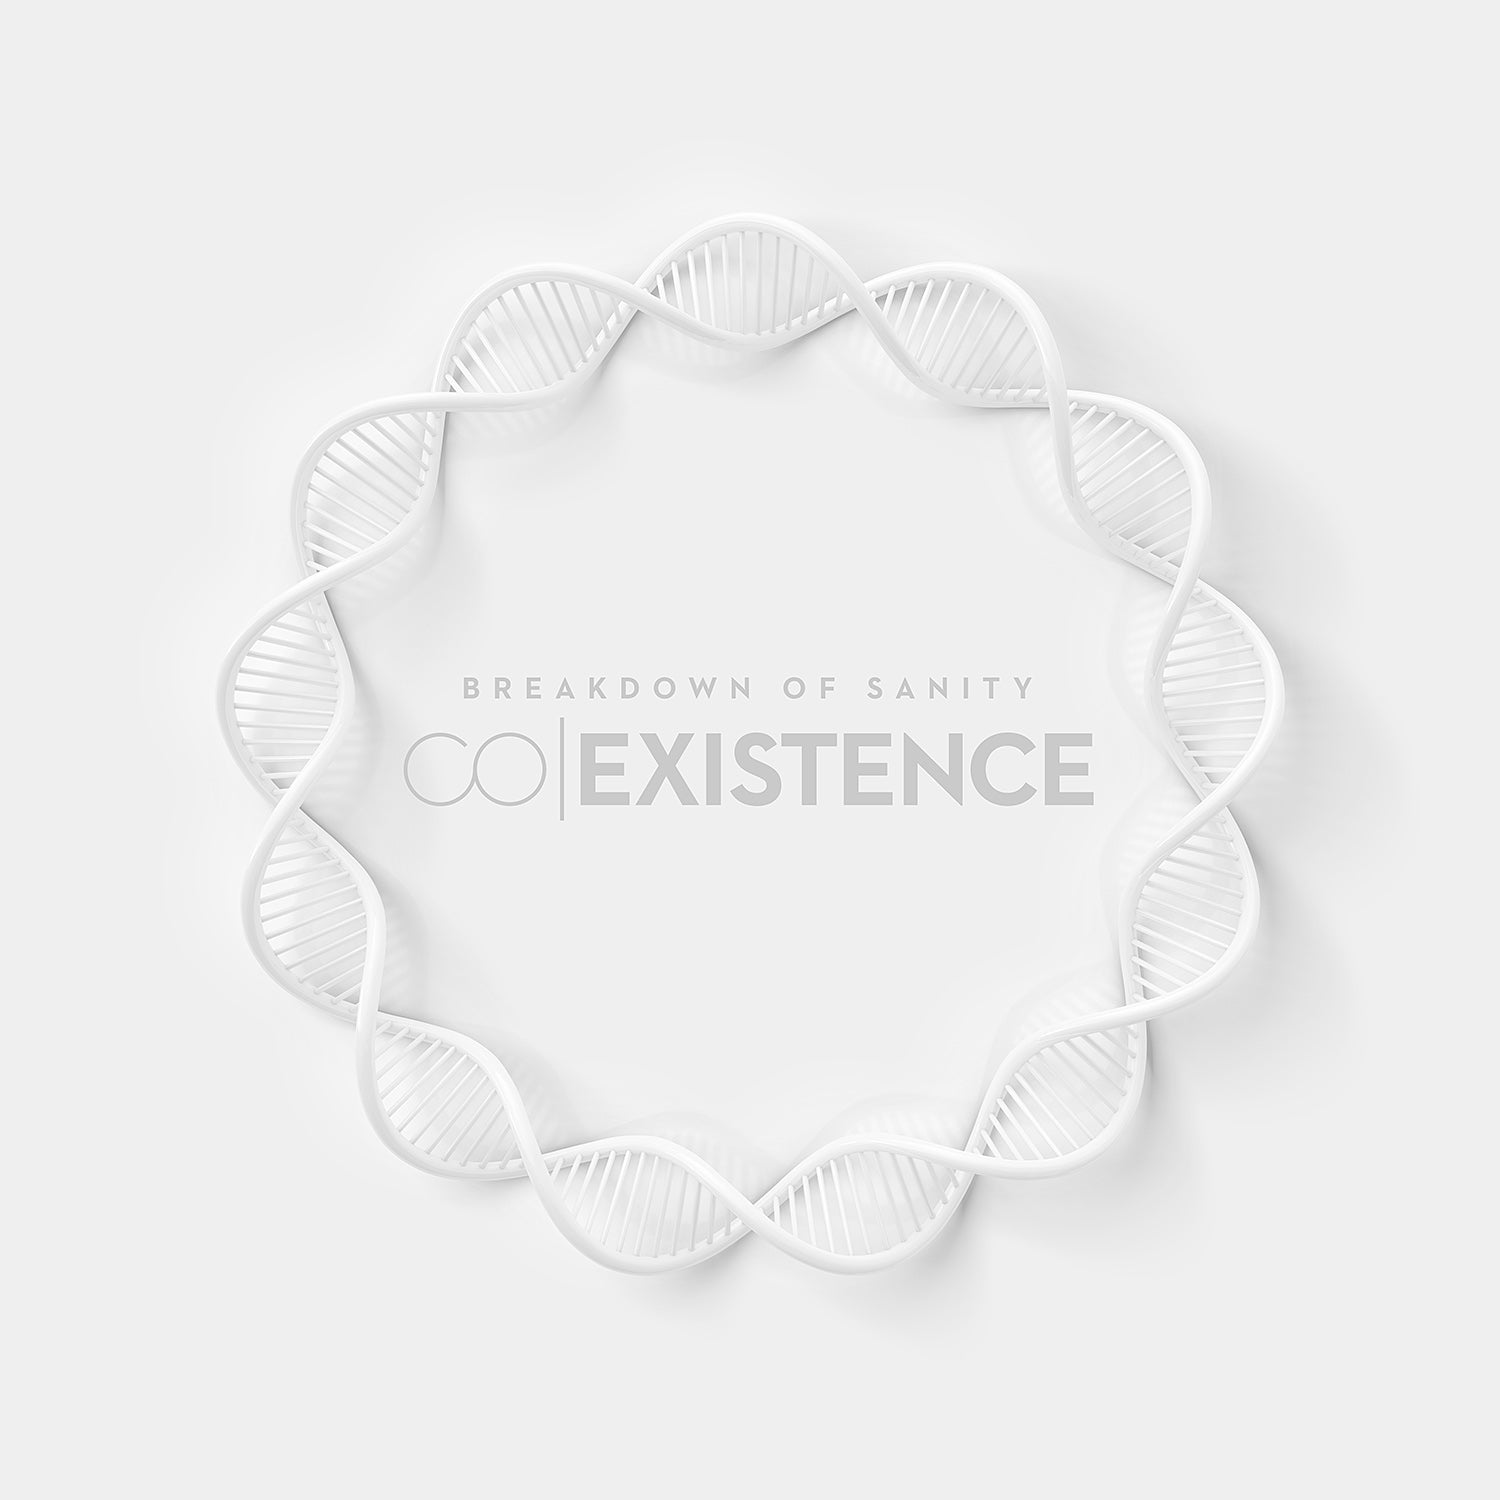 Coexistence - Special Deluxe Box